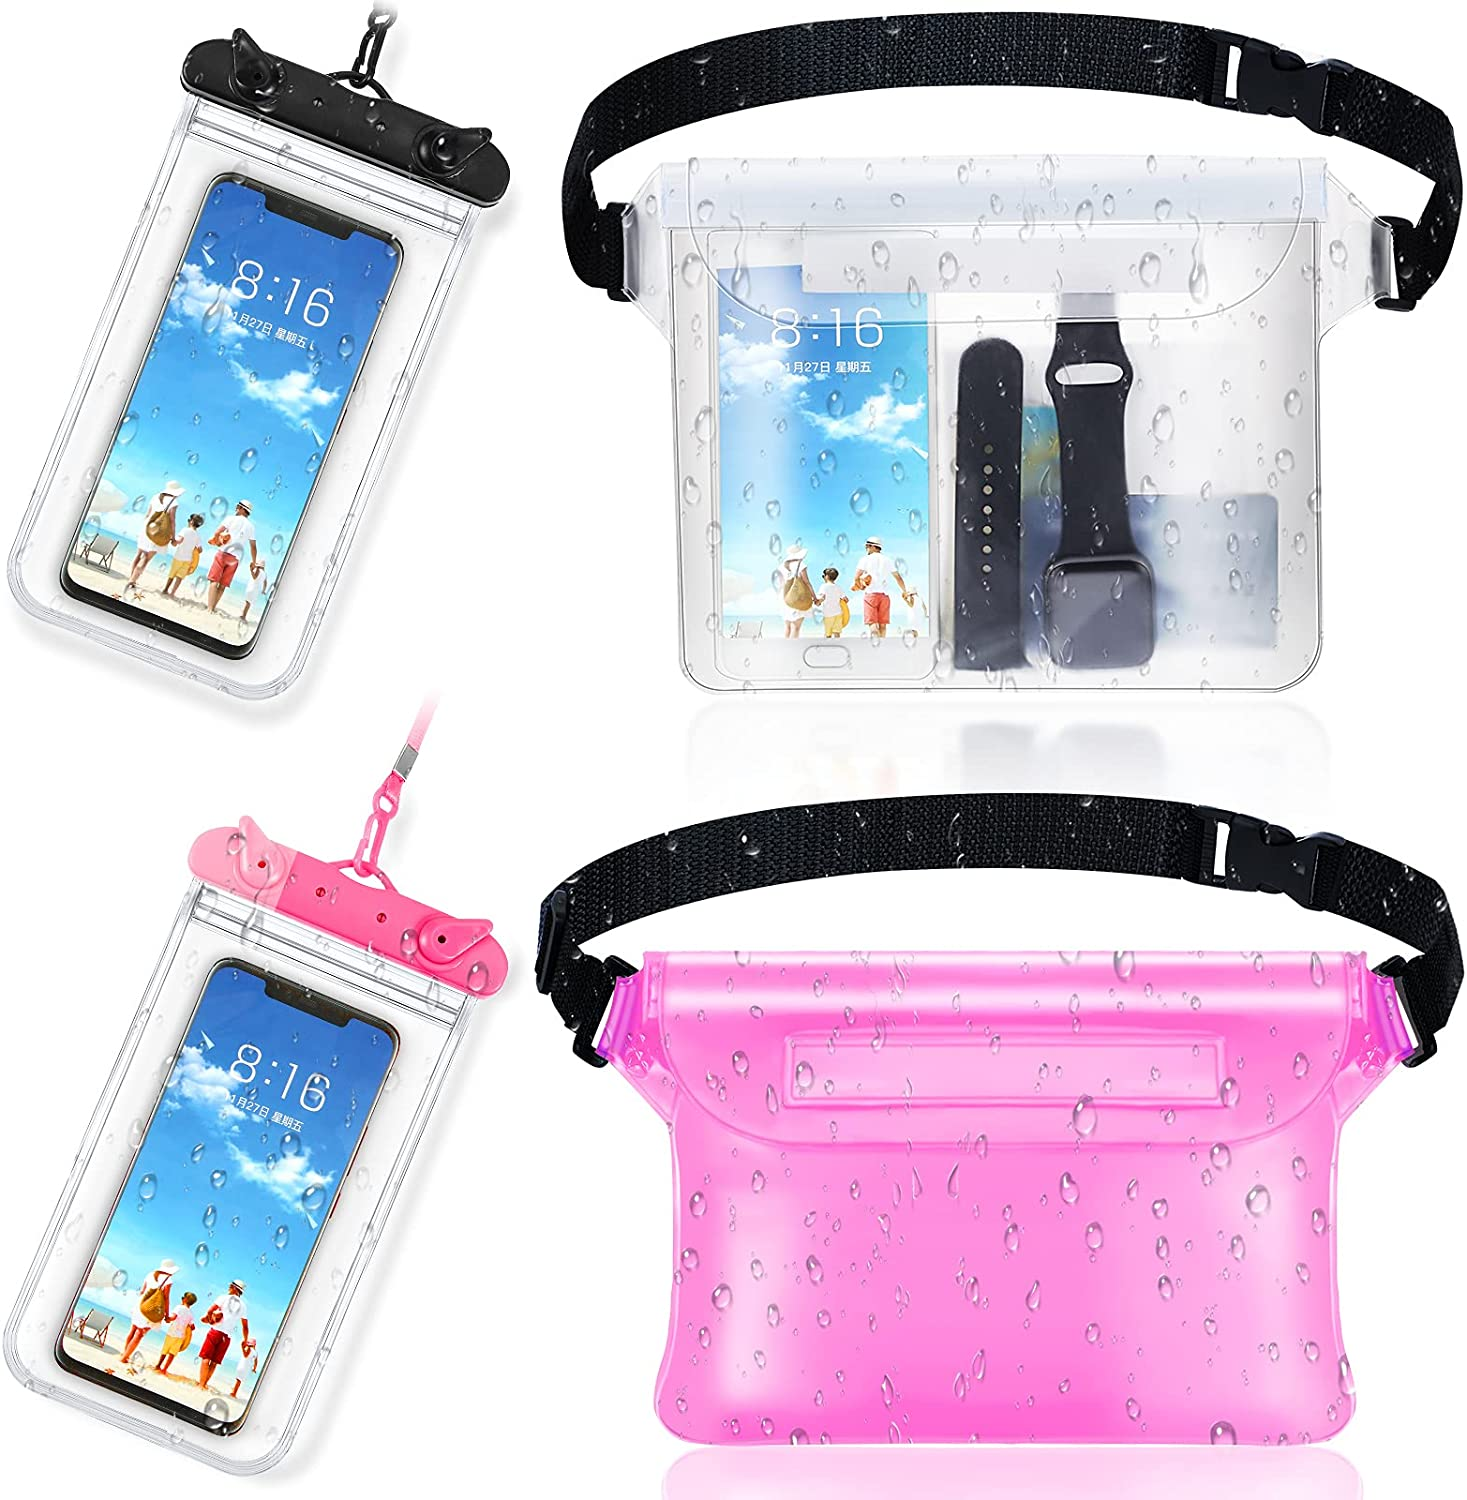 2 Pieces Waterproof Phone Pouch Universal Cellphone Case and 2 Waterproof Fanny Pack with Waist Strap Screen Touchable Dry Bag for Swimming Snorkeling Boating (Clear Black, Clear Pink, Pink)